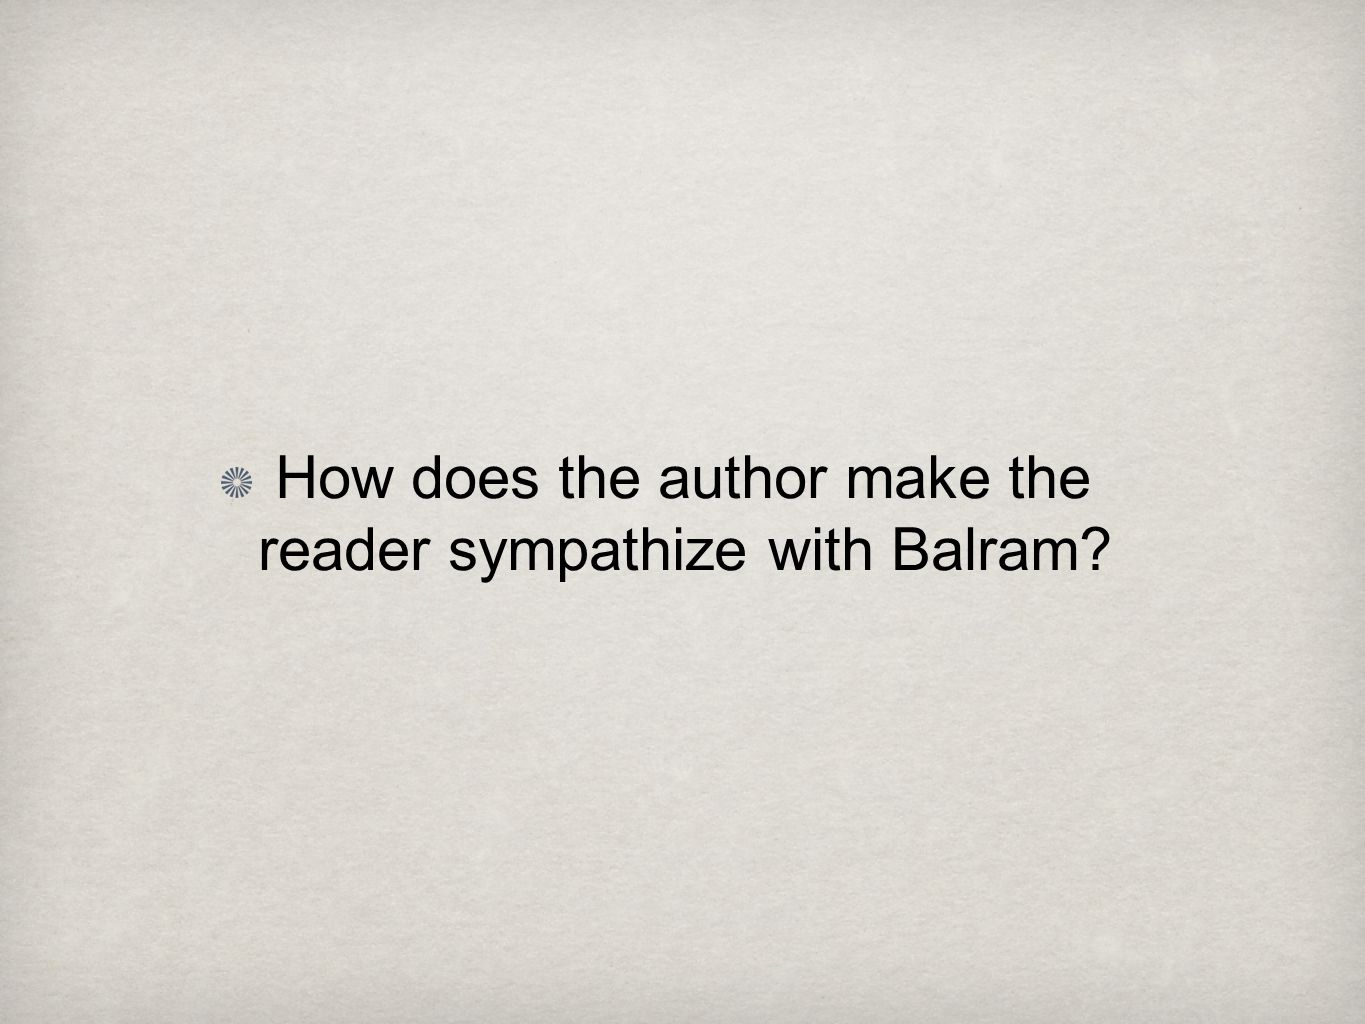 How does the author make the reader sympathize with Balram